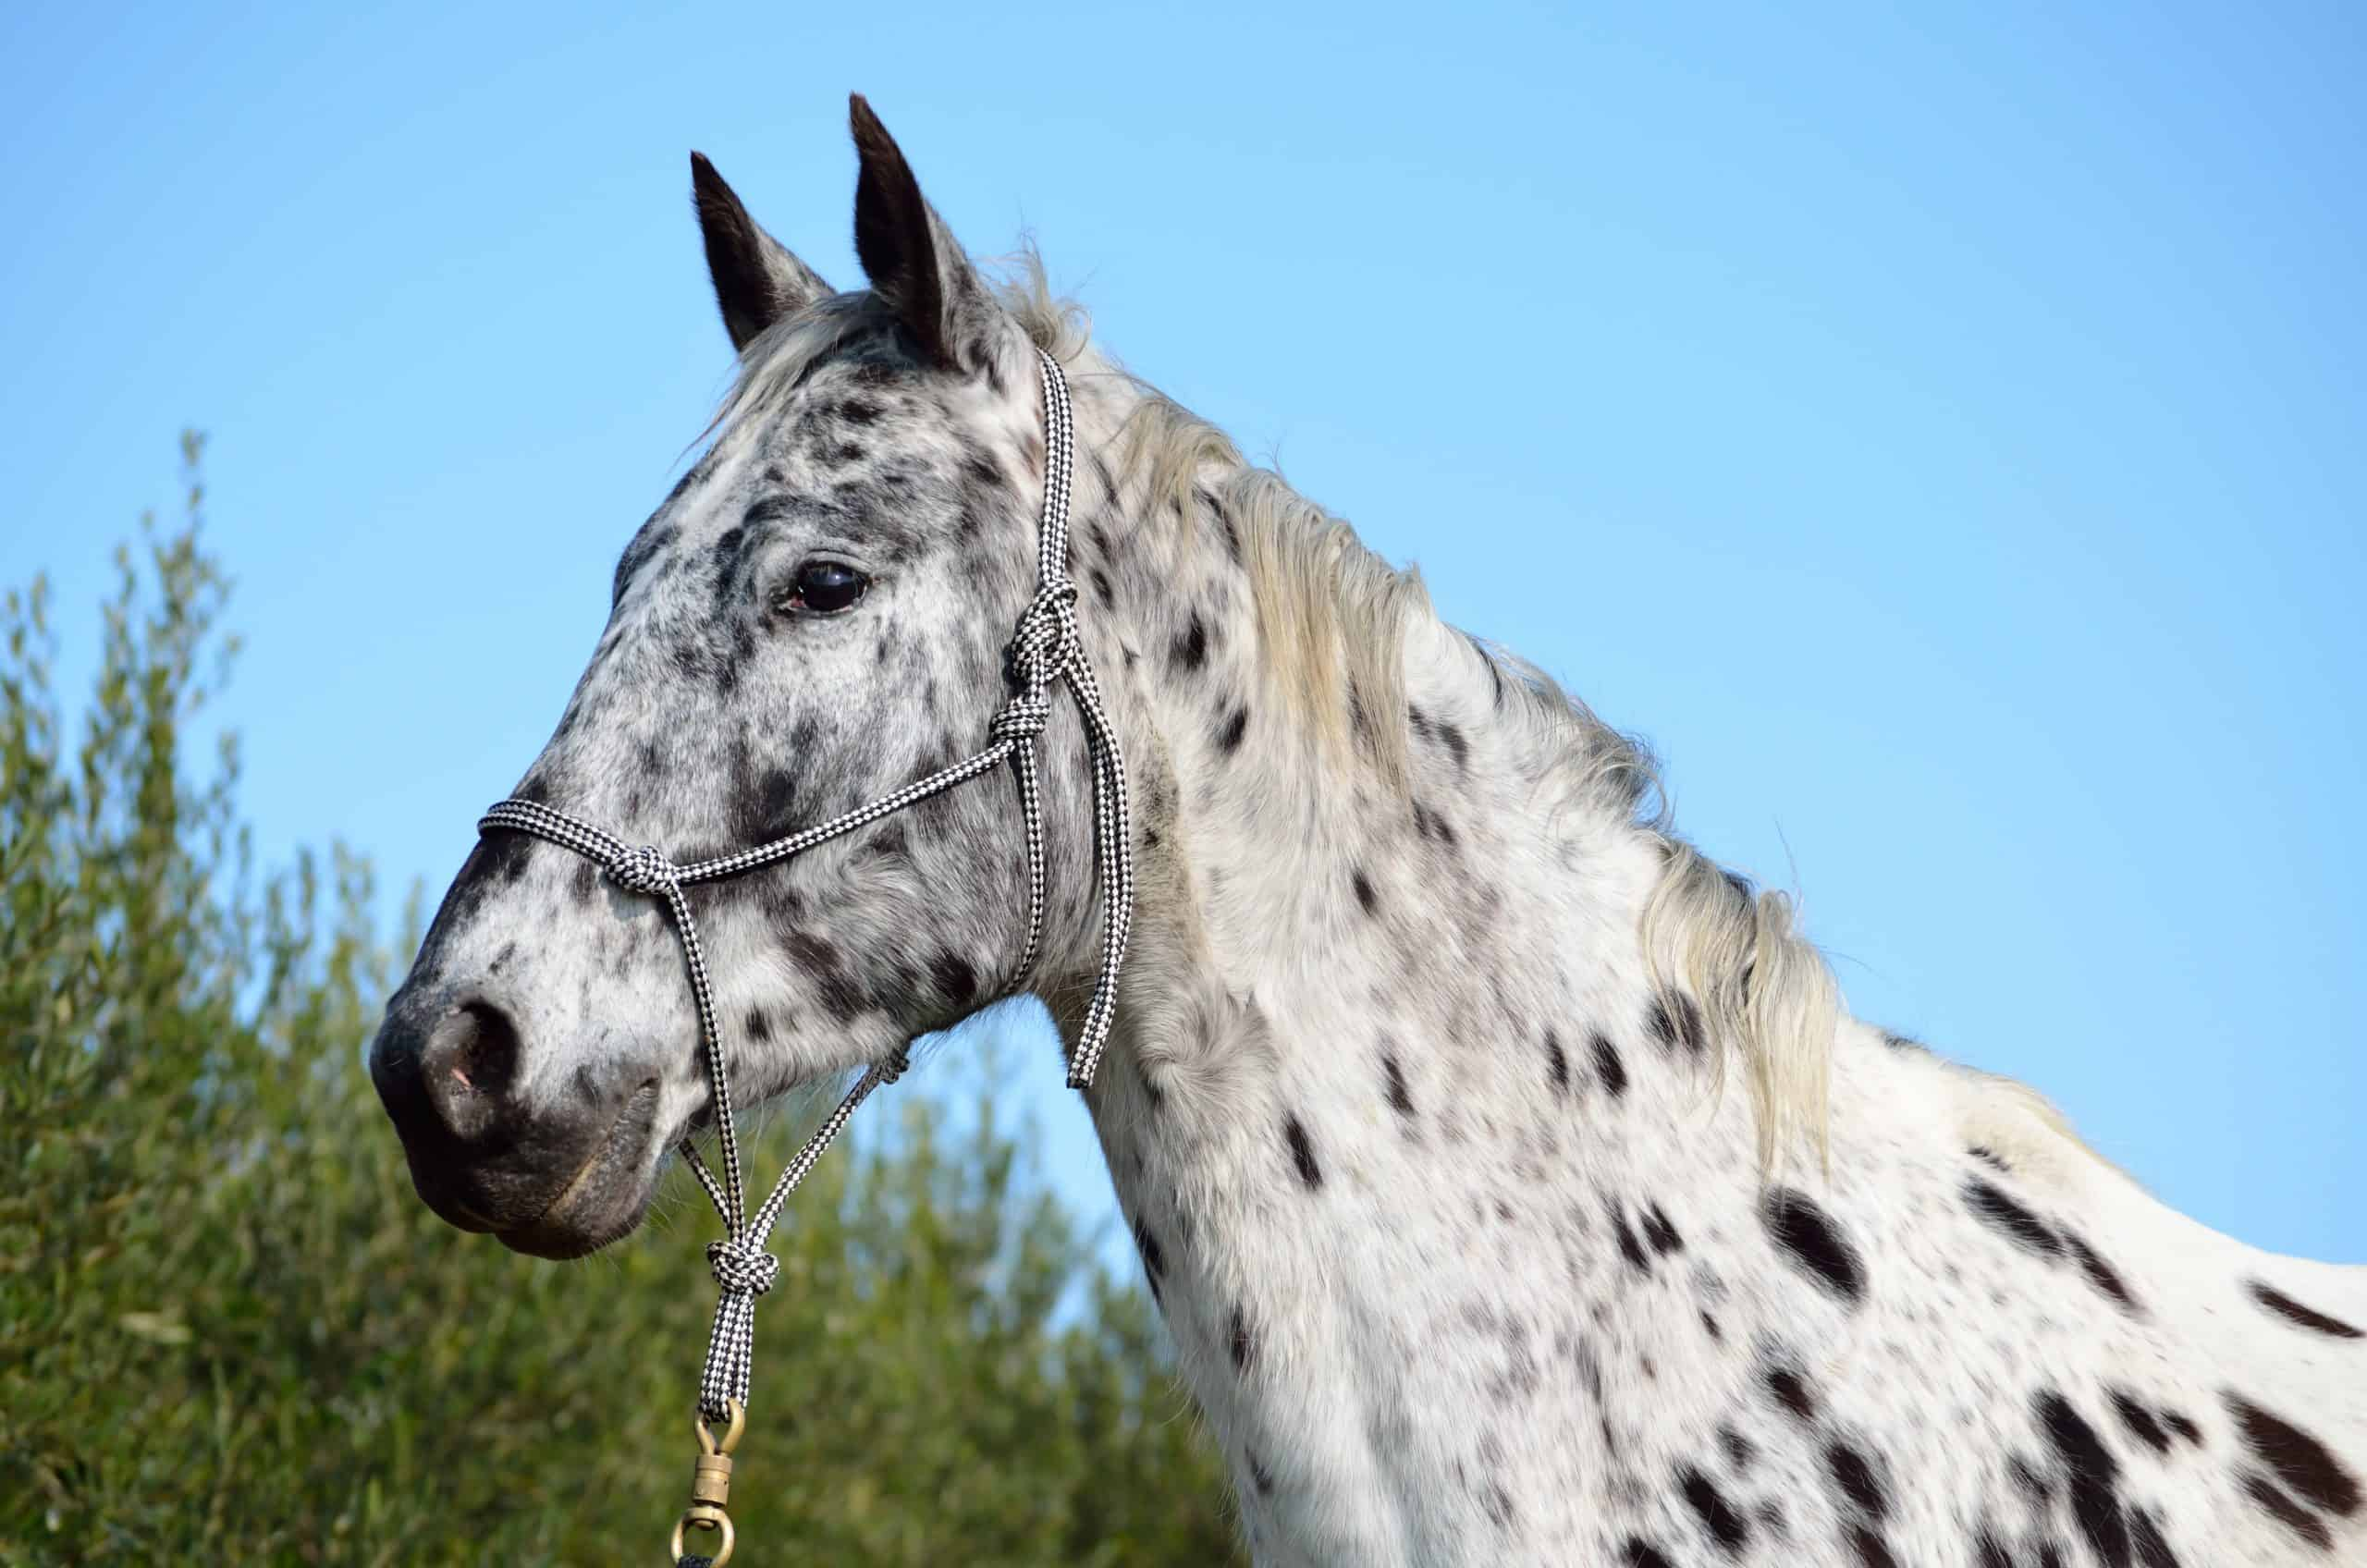 A spotted horse with a rope halter on